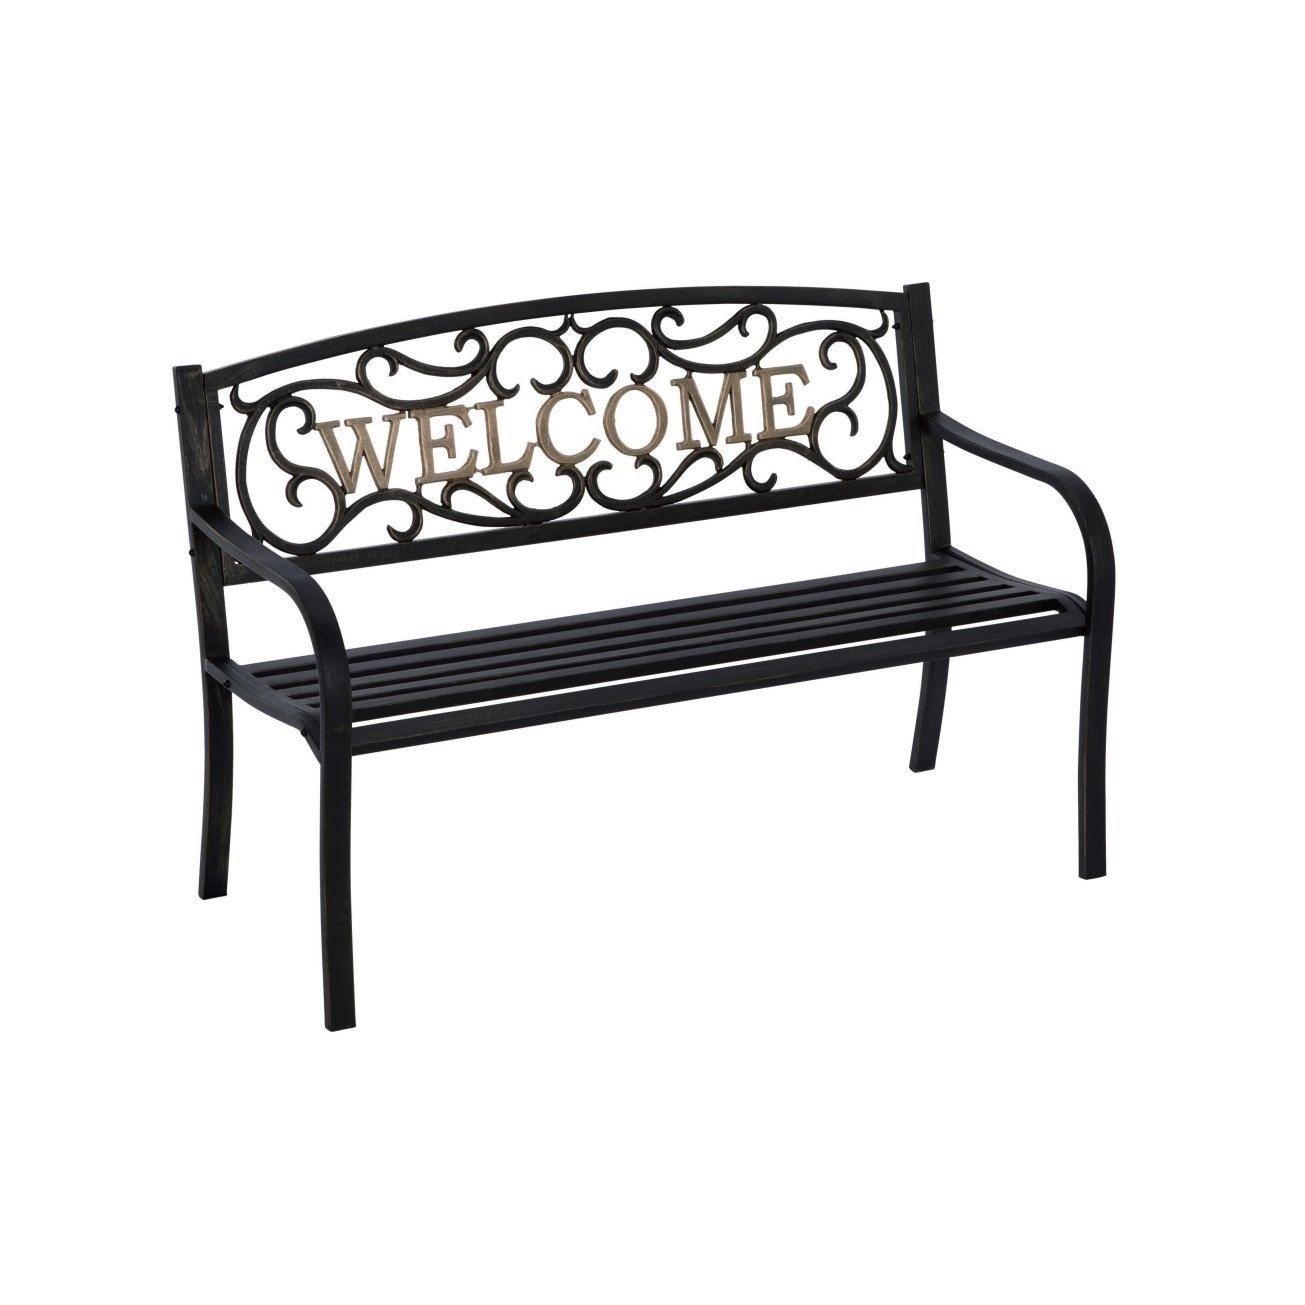 Creativeworks Home Decor Garden Benches